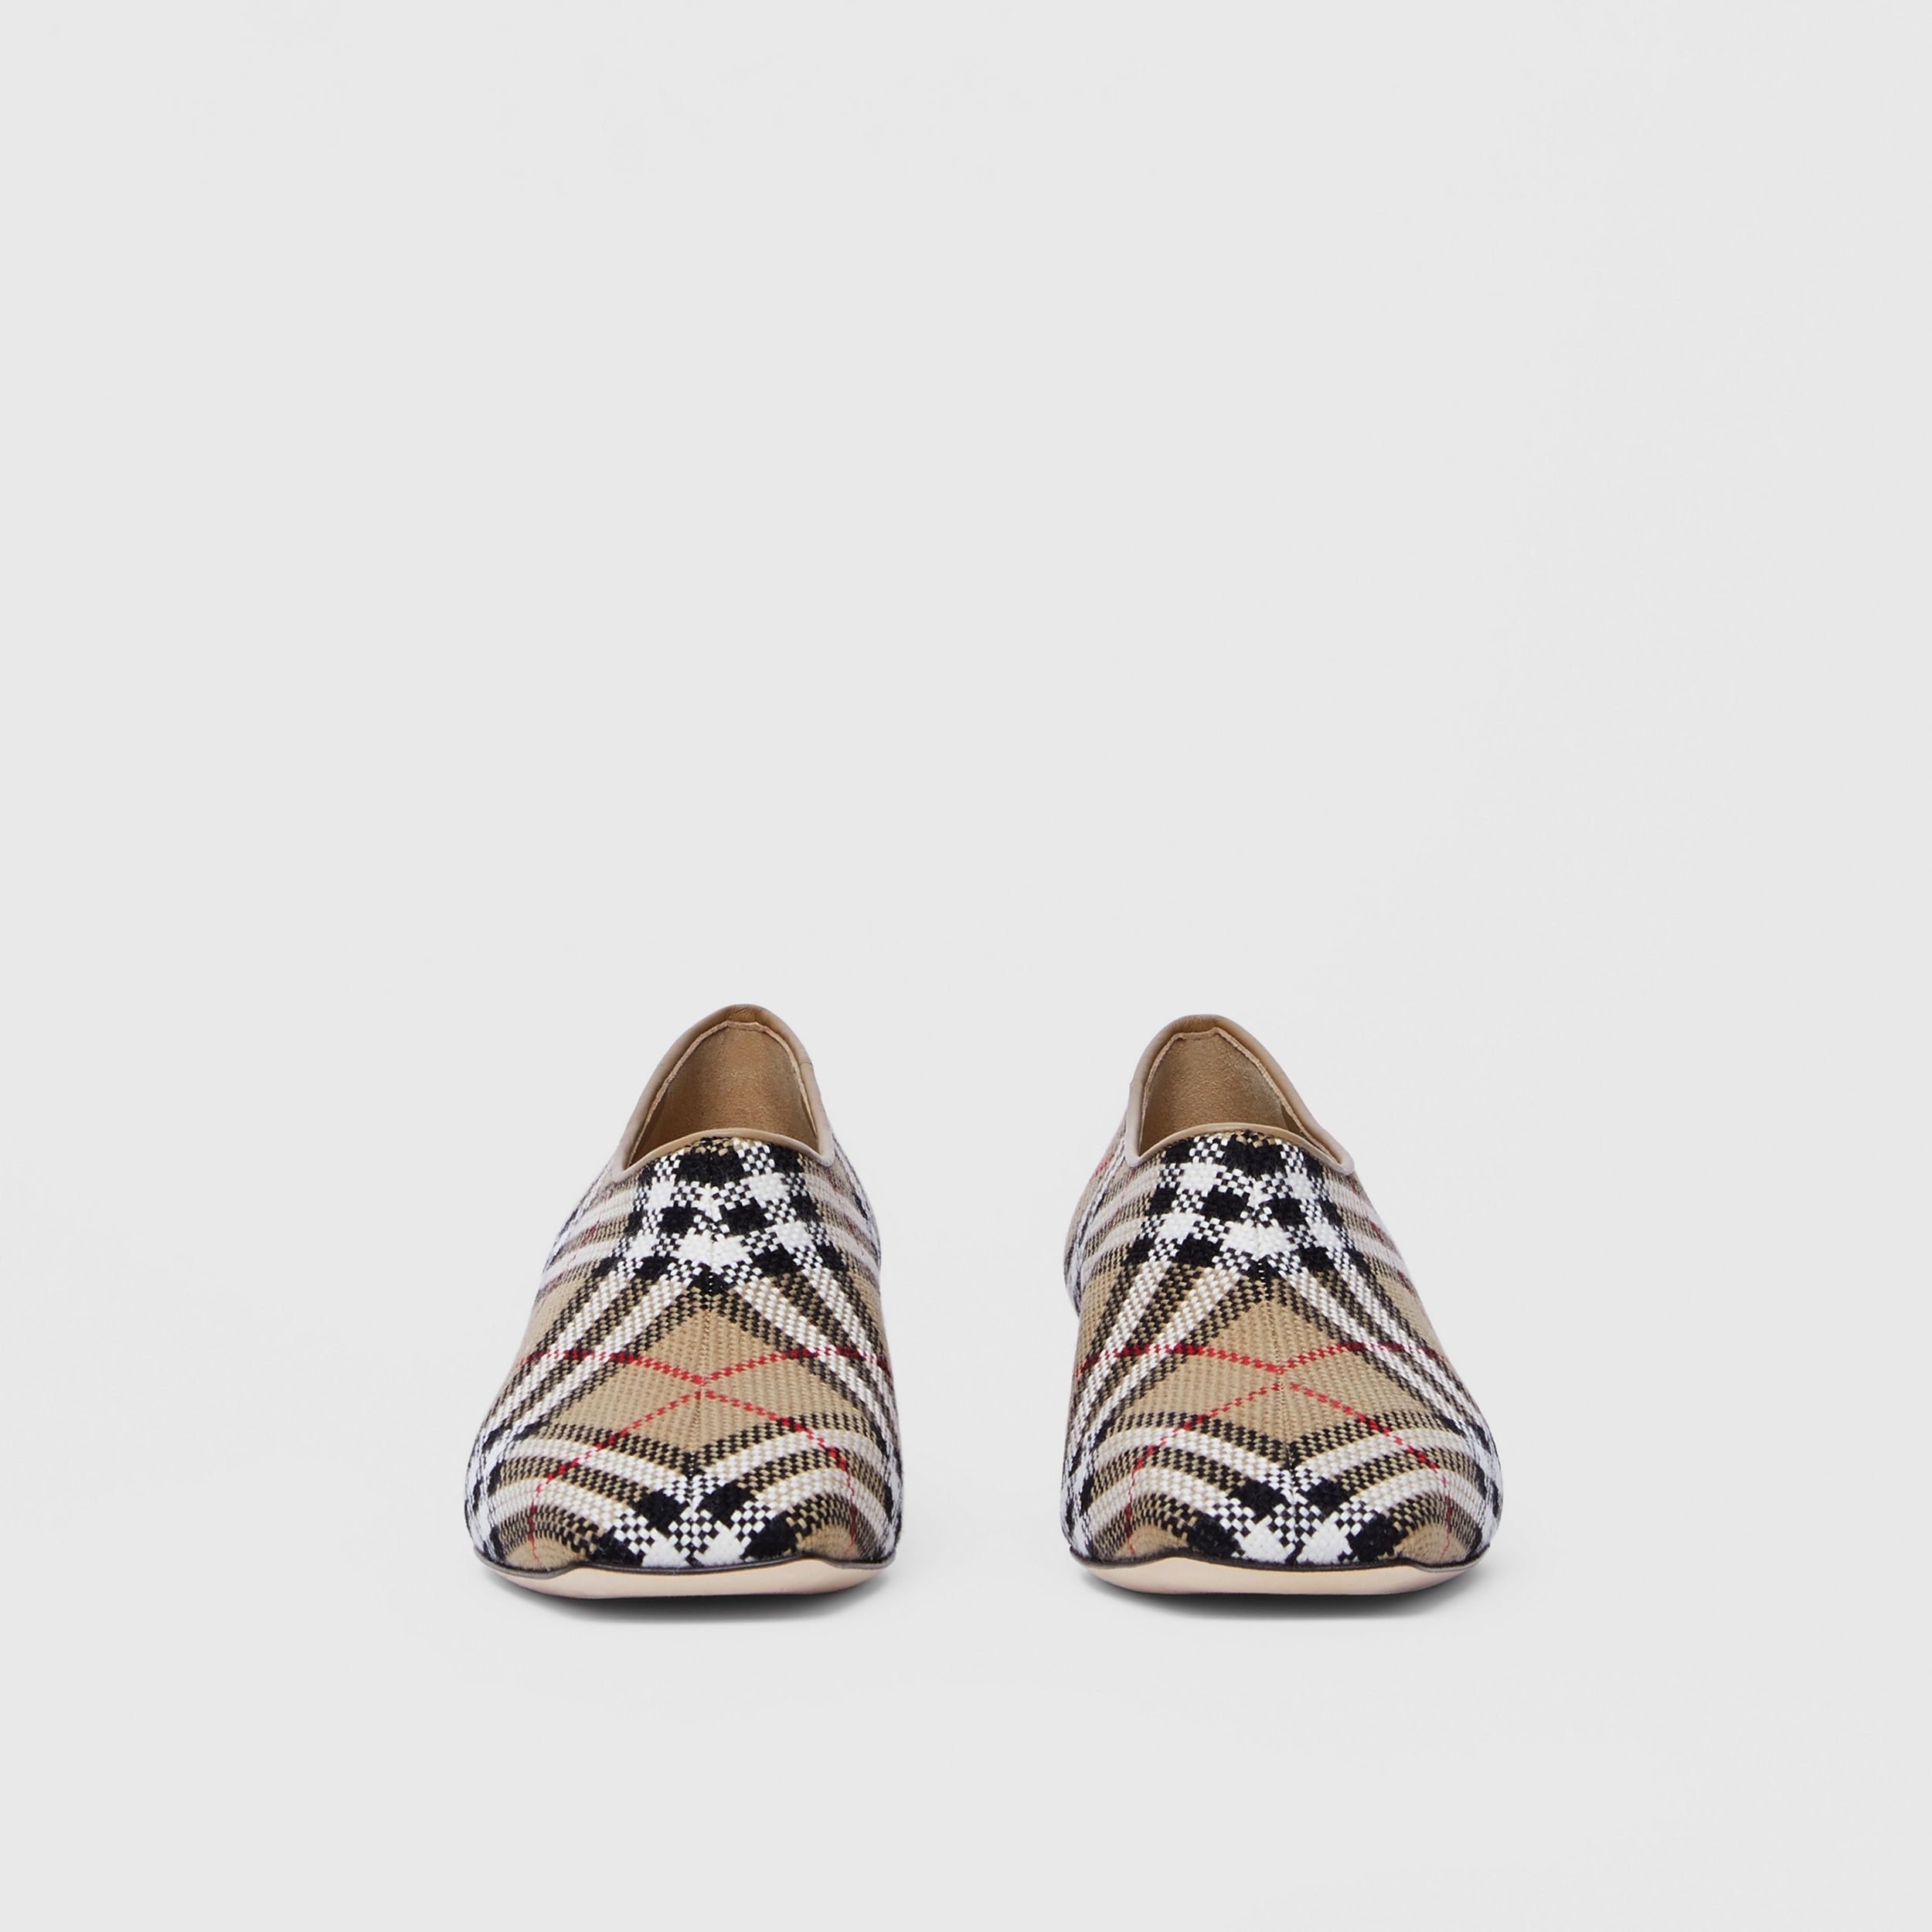 Latticed Cotton Kitten-heel Pumps in Archive Beige - Women | Burberry - 3